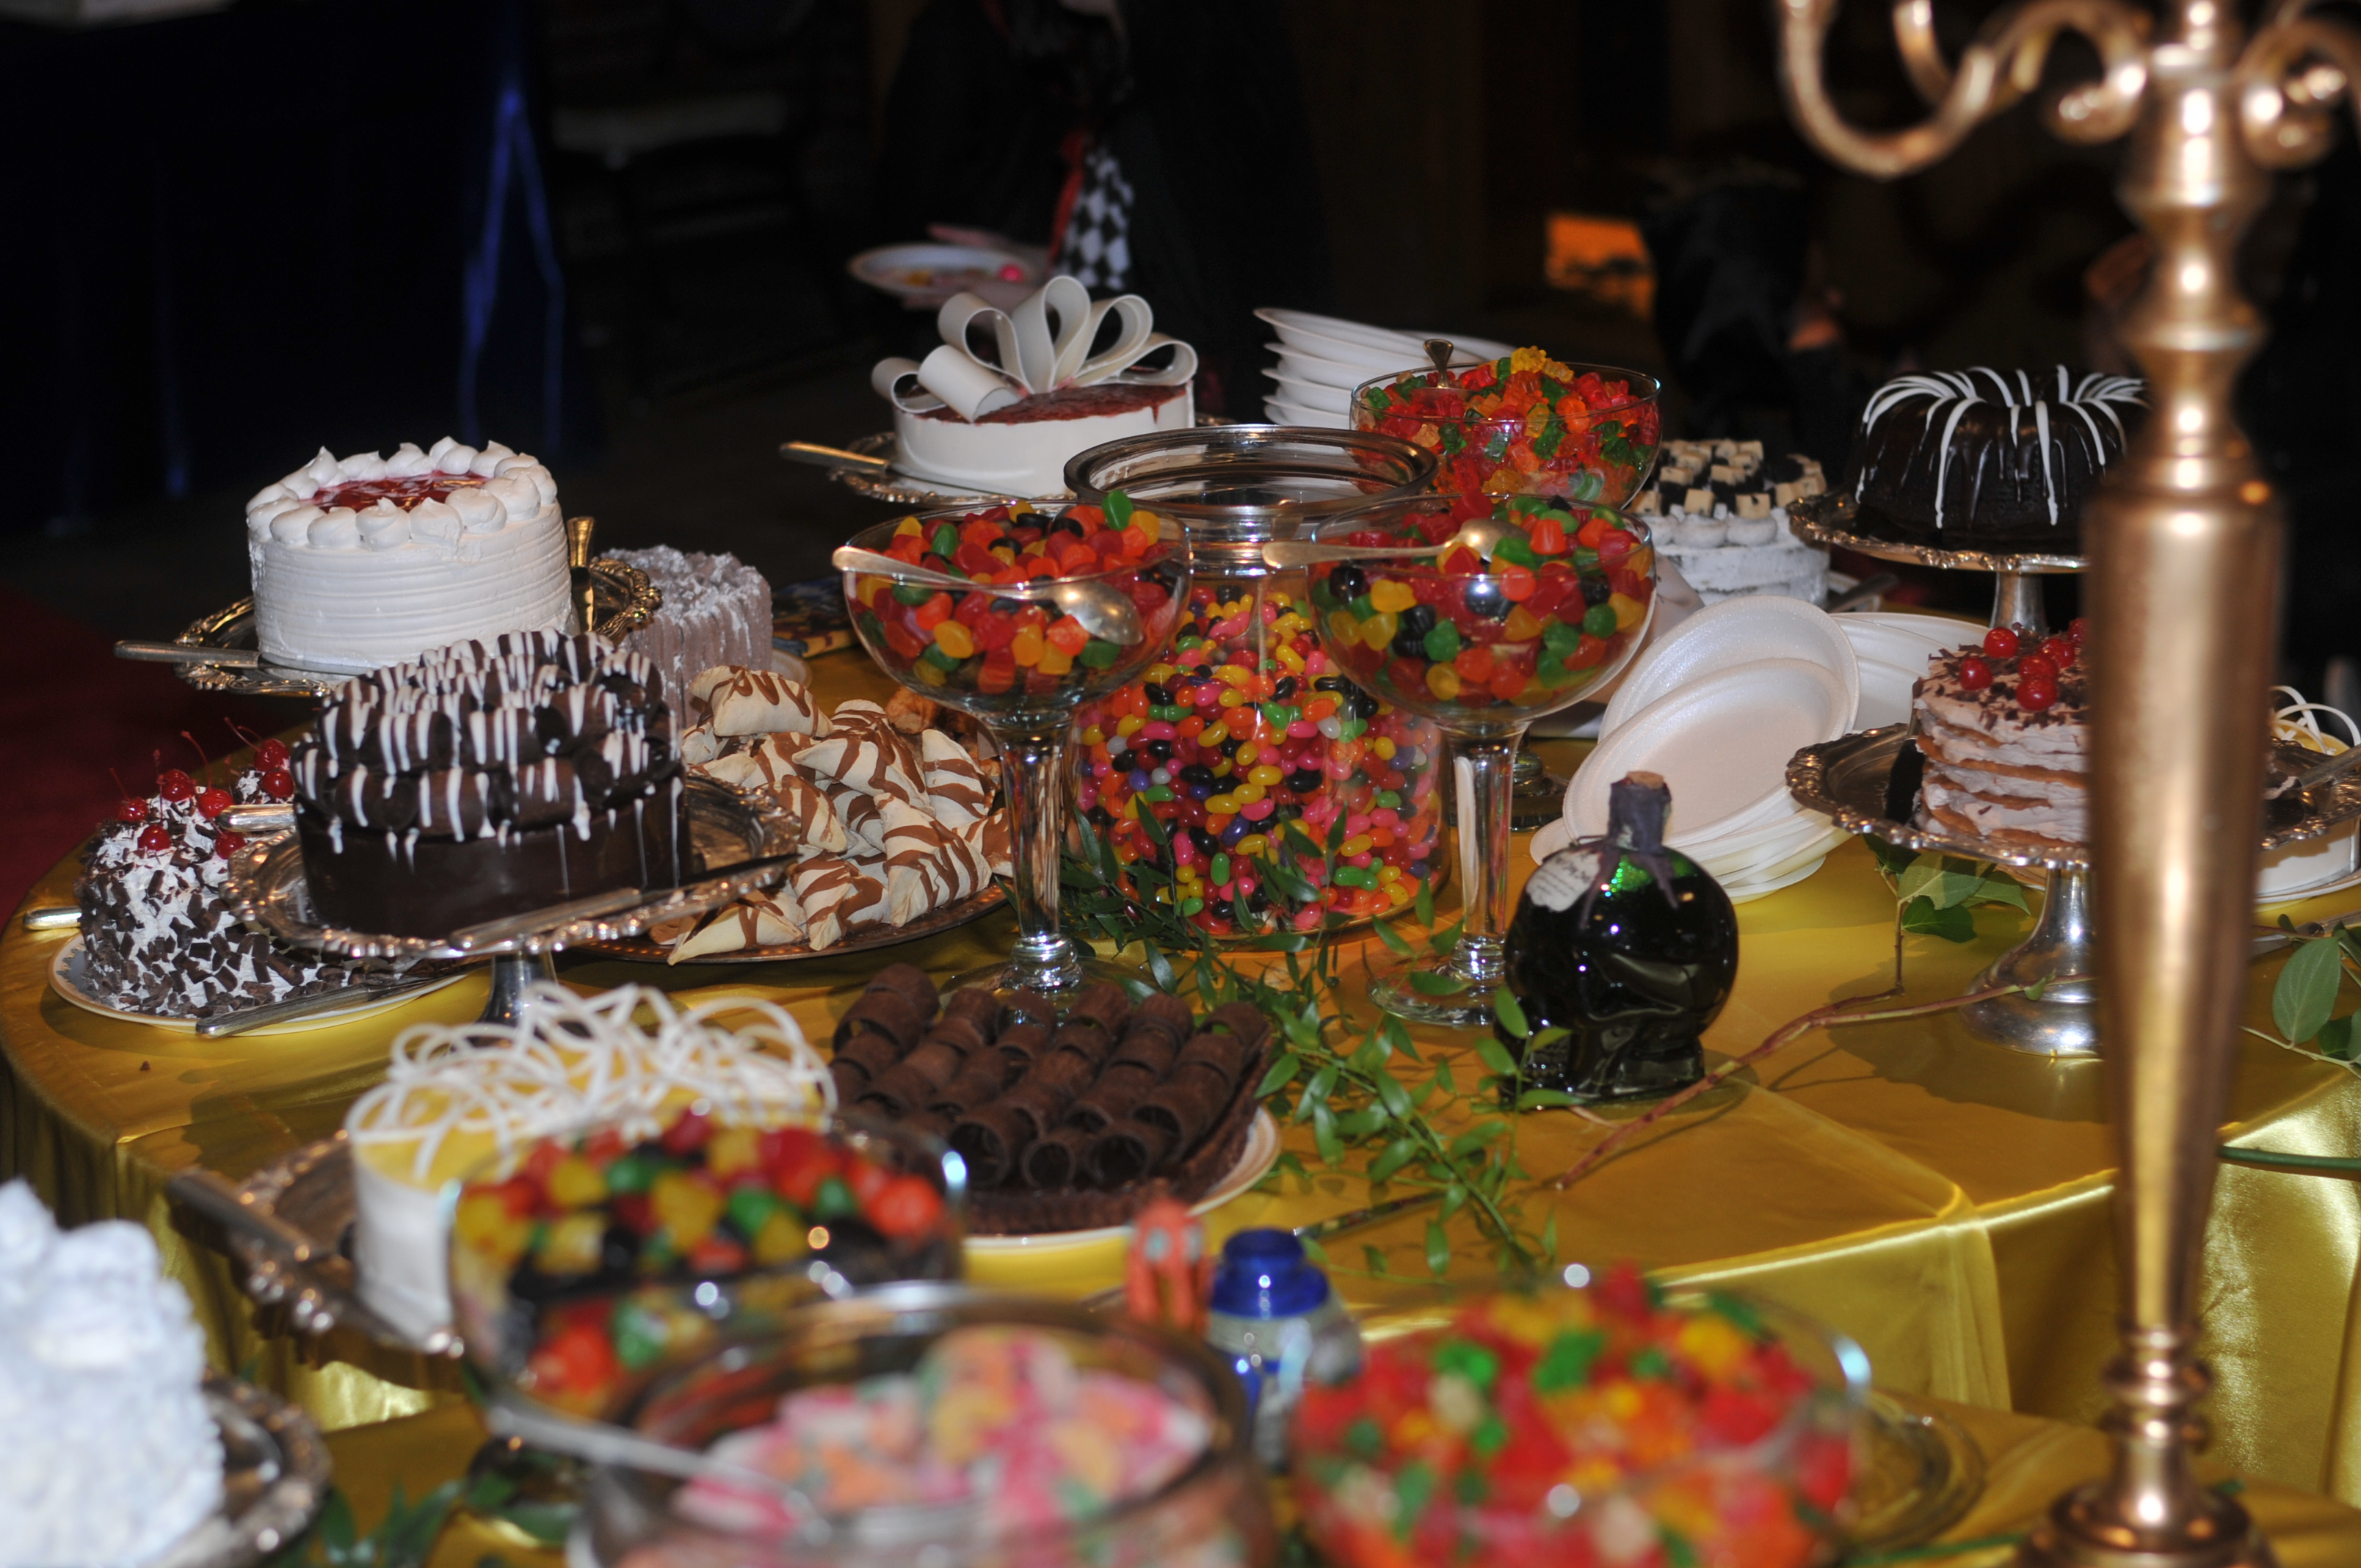 Dessert Table with Cakes and Candy